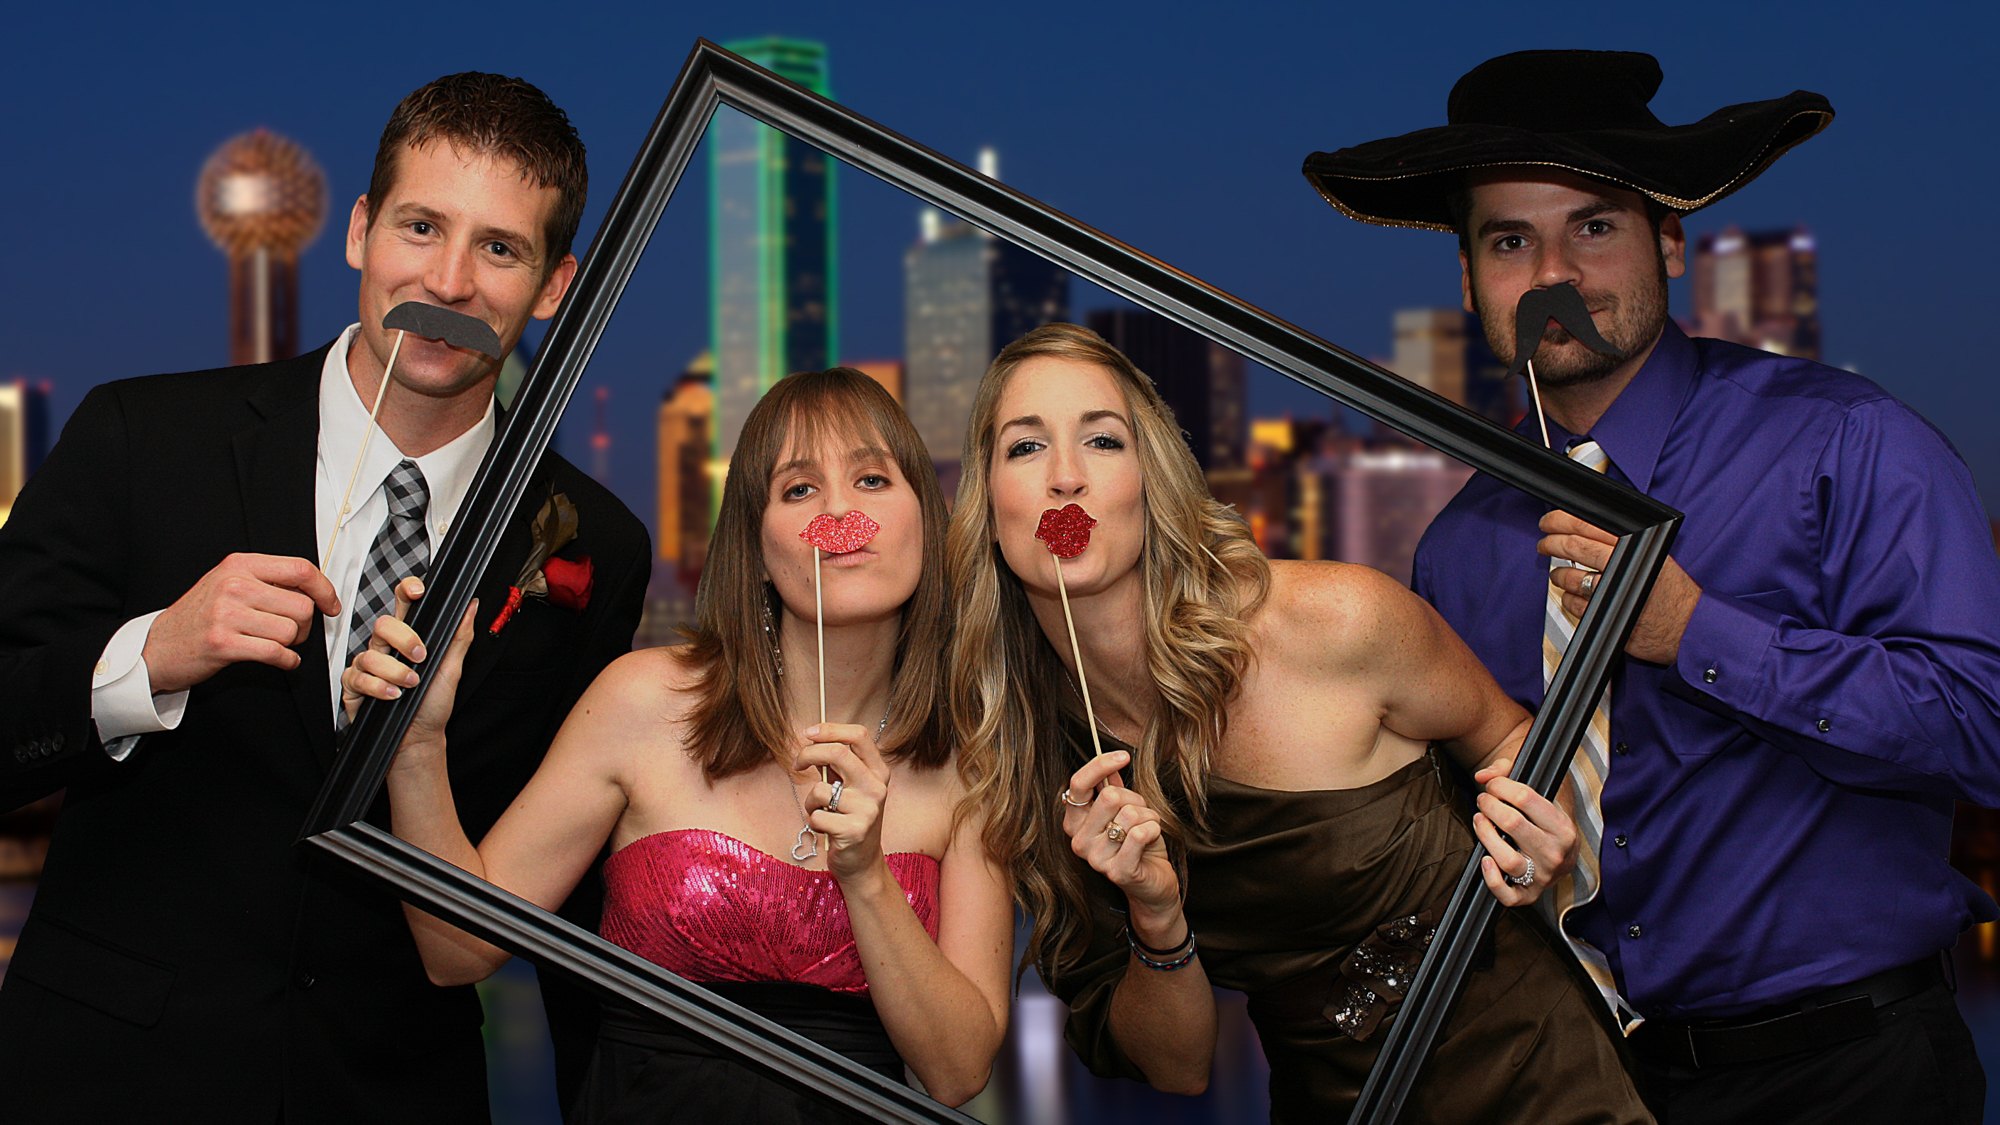 Friends pose for photography at a wedding in a digital sharing photosation. They are seen inside a picture frame with a green screen image of Dallas in the background.